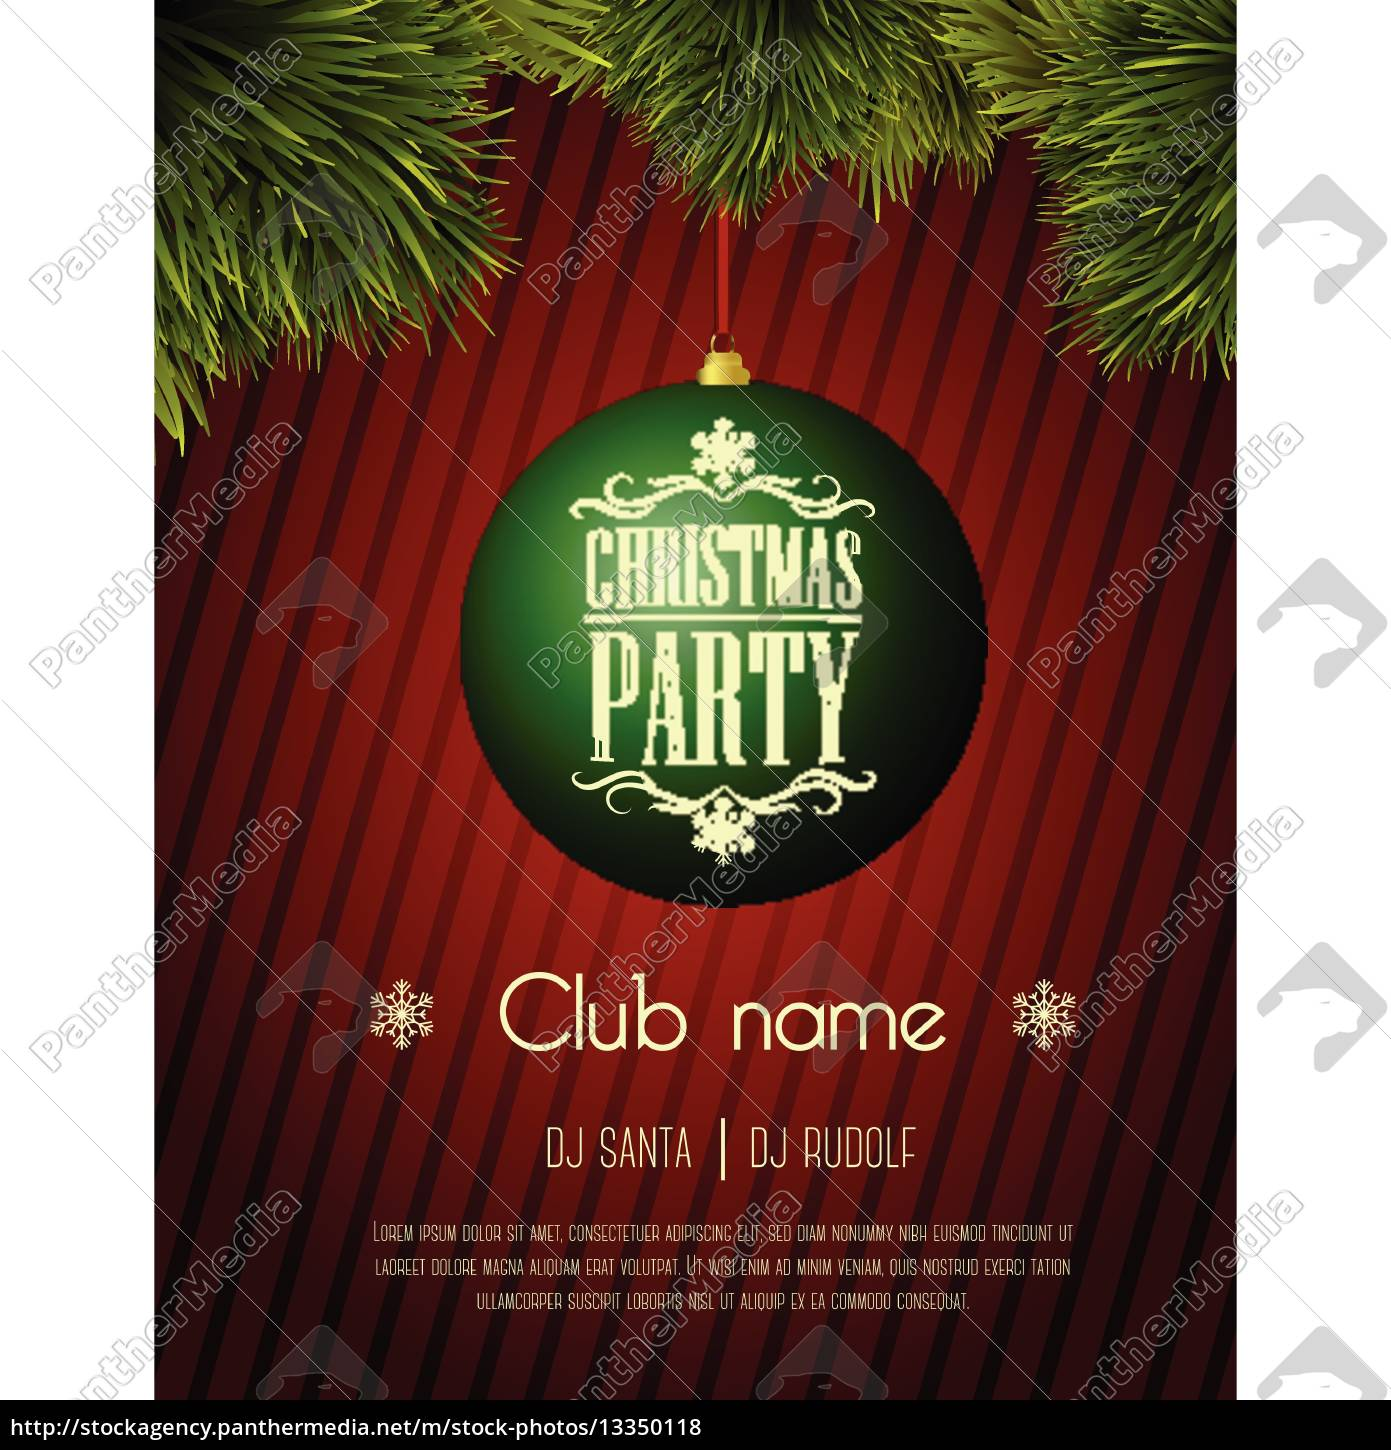 Christmas Party Flyer.Royalty Free Vector 13350118 Christmas Party Flyer Template Green Bauble On A Red